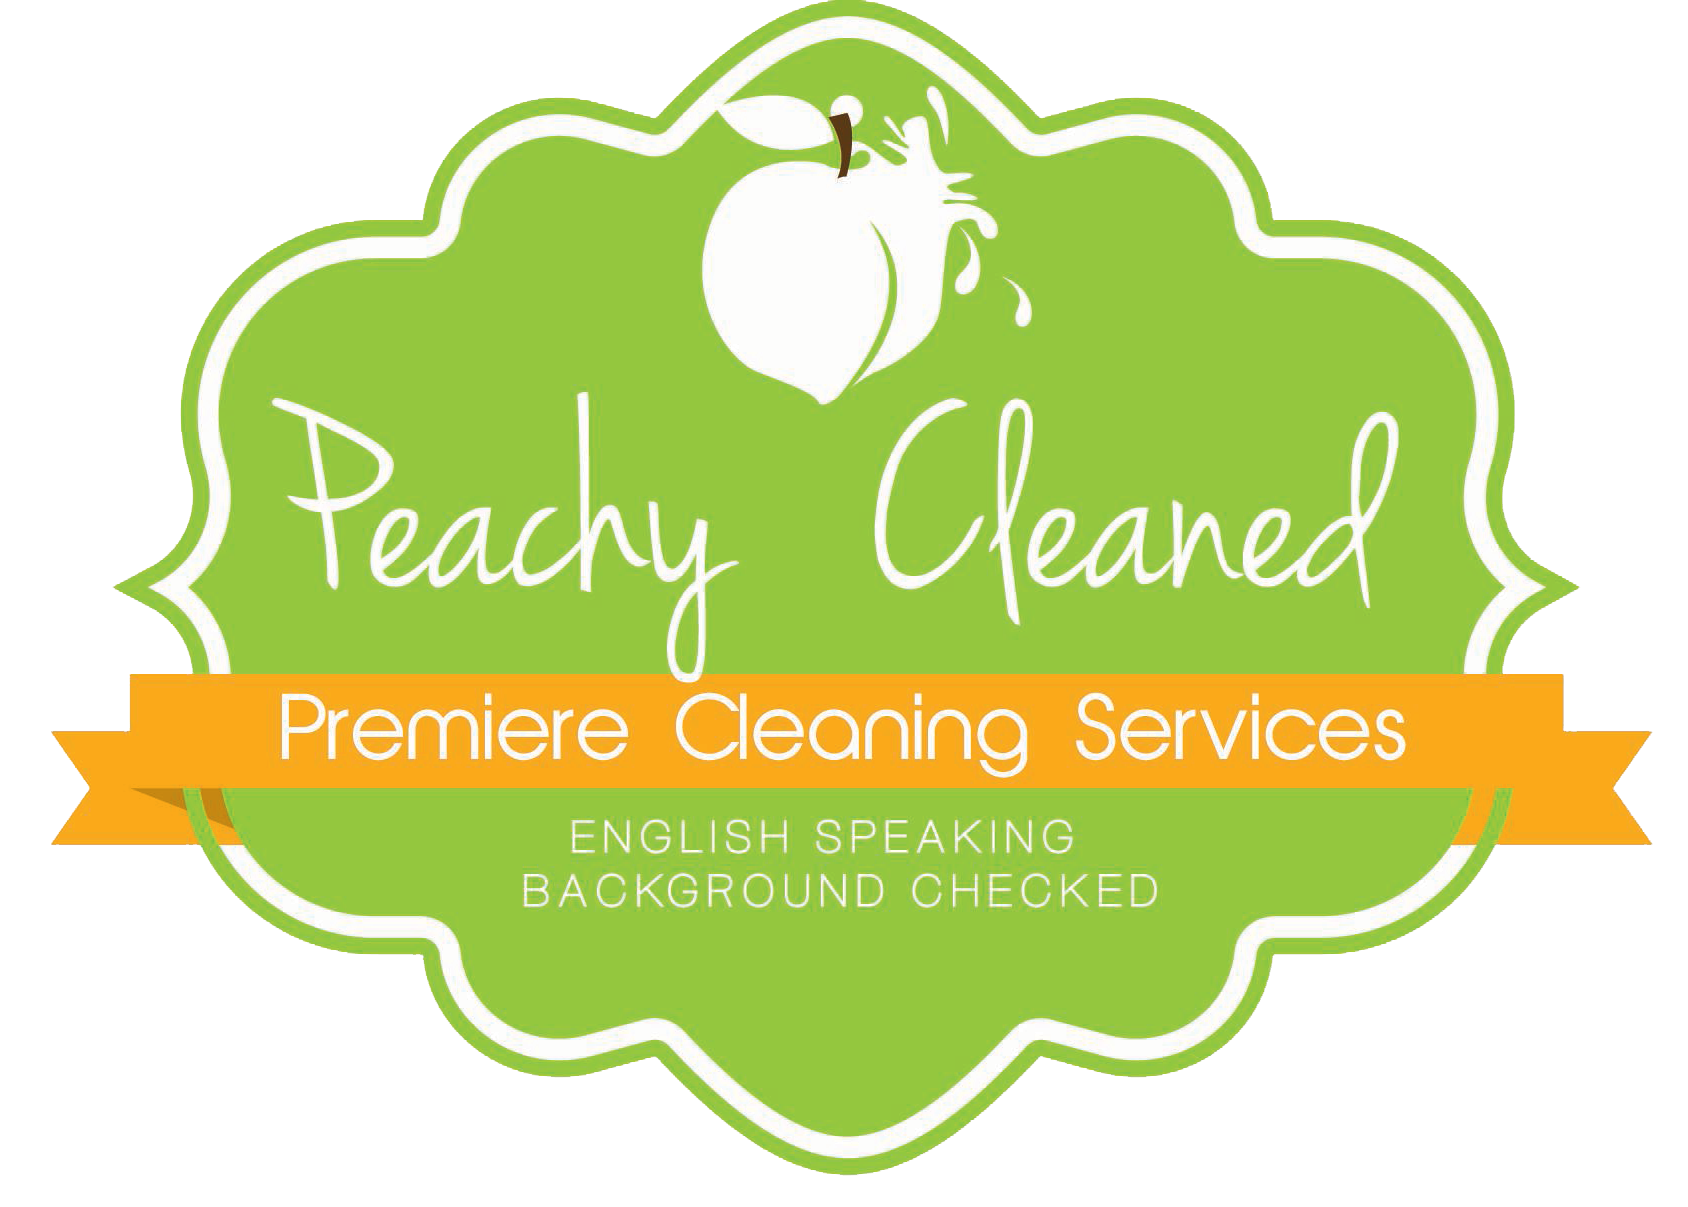 Peachy cleaned 6